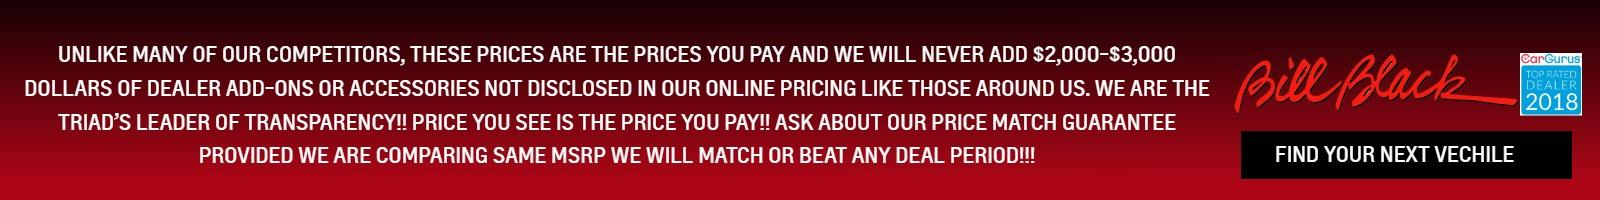 Unlike many of our competitors, these prices are the prices you pay and we will NEVER add $2,000-$3,000 dollars of dealer add-ons or accessories not disclosed in our online pricing like those around us. We are the Triad's leader of transparency!! Price you see is the price you pay!! Ask about our price match guarantee provided we are comparing same MSRP we will match or beat any deal period!!!